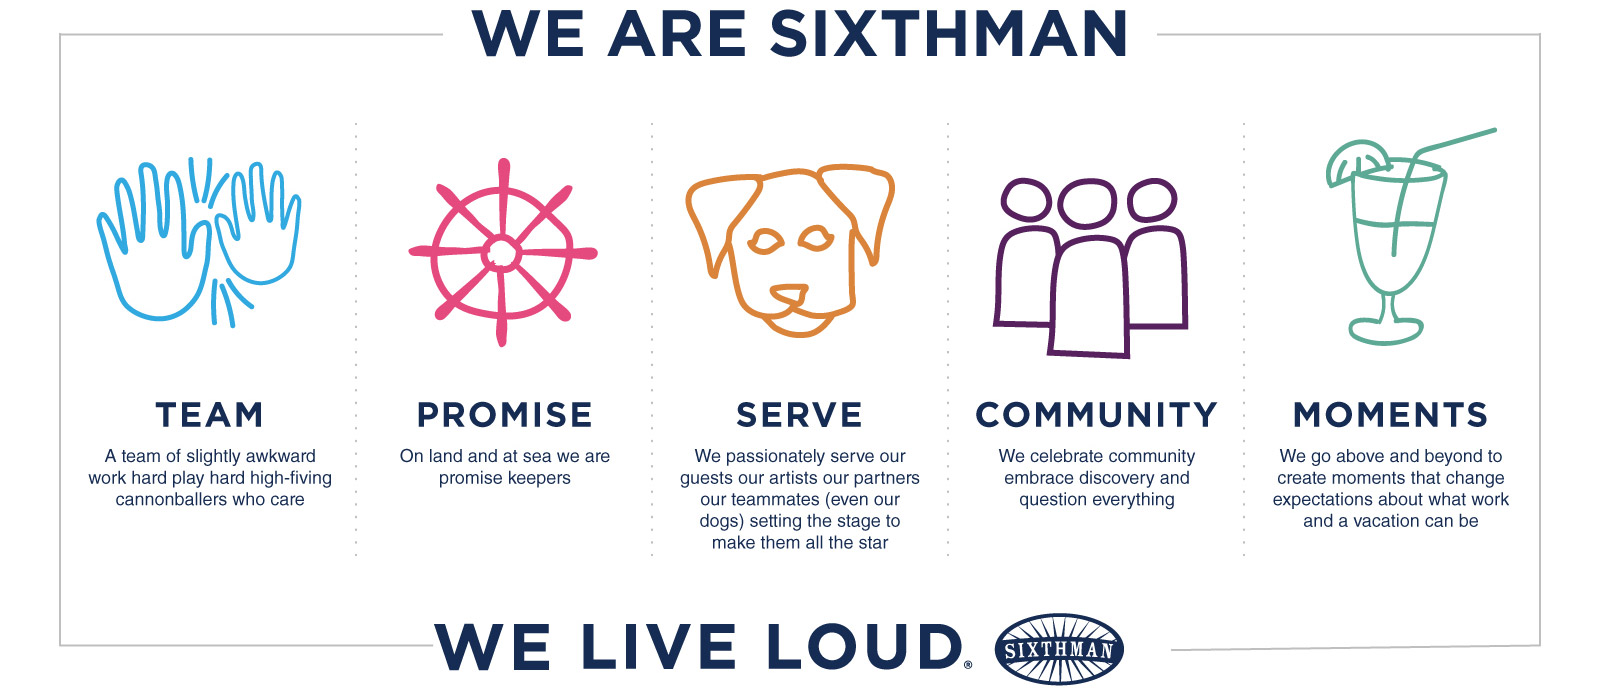 Sixthman Values